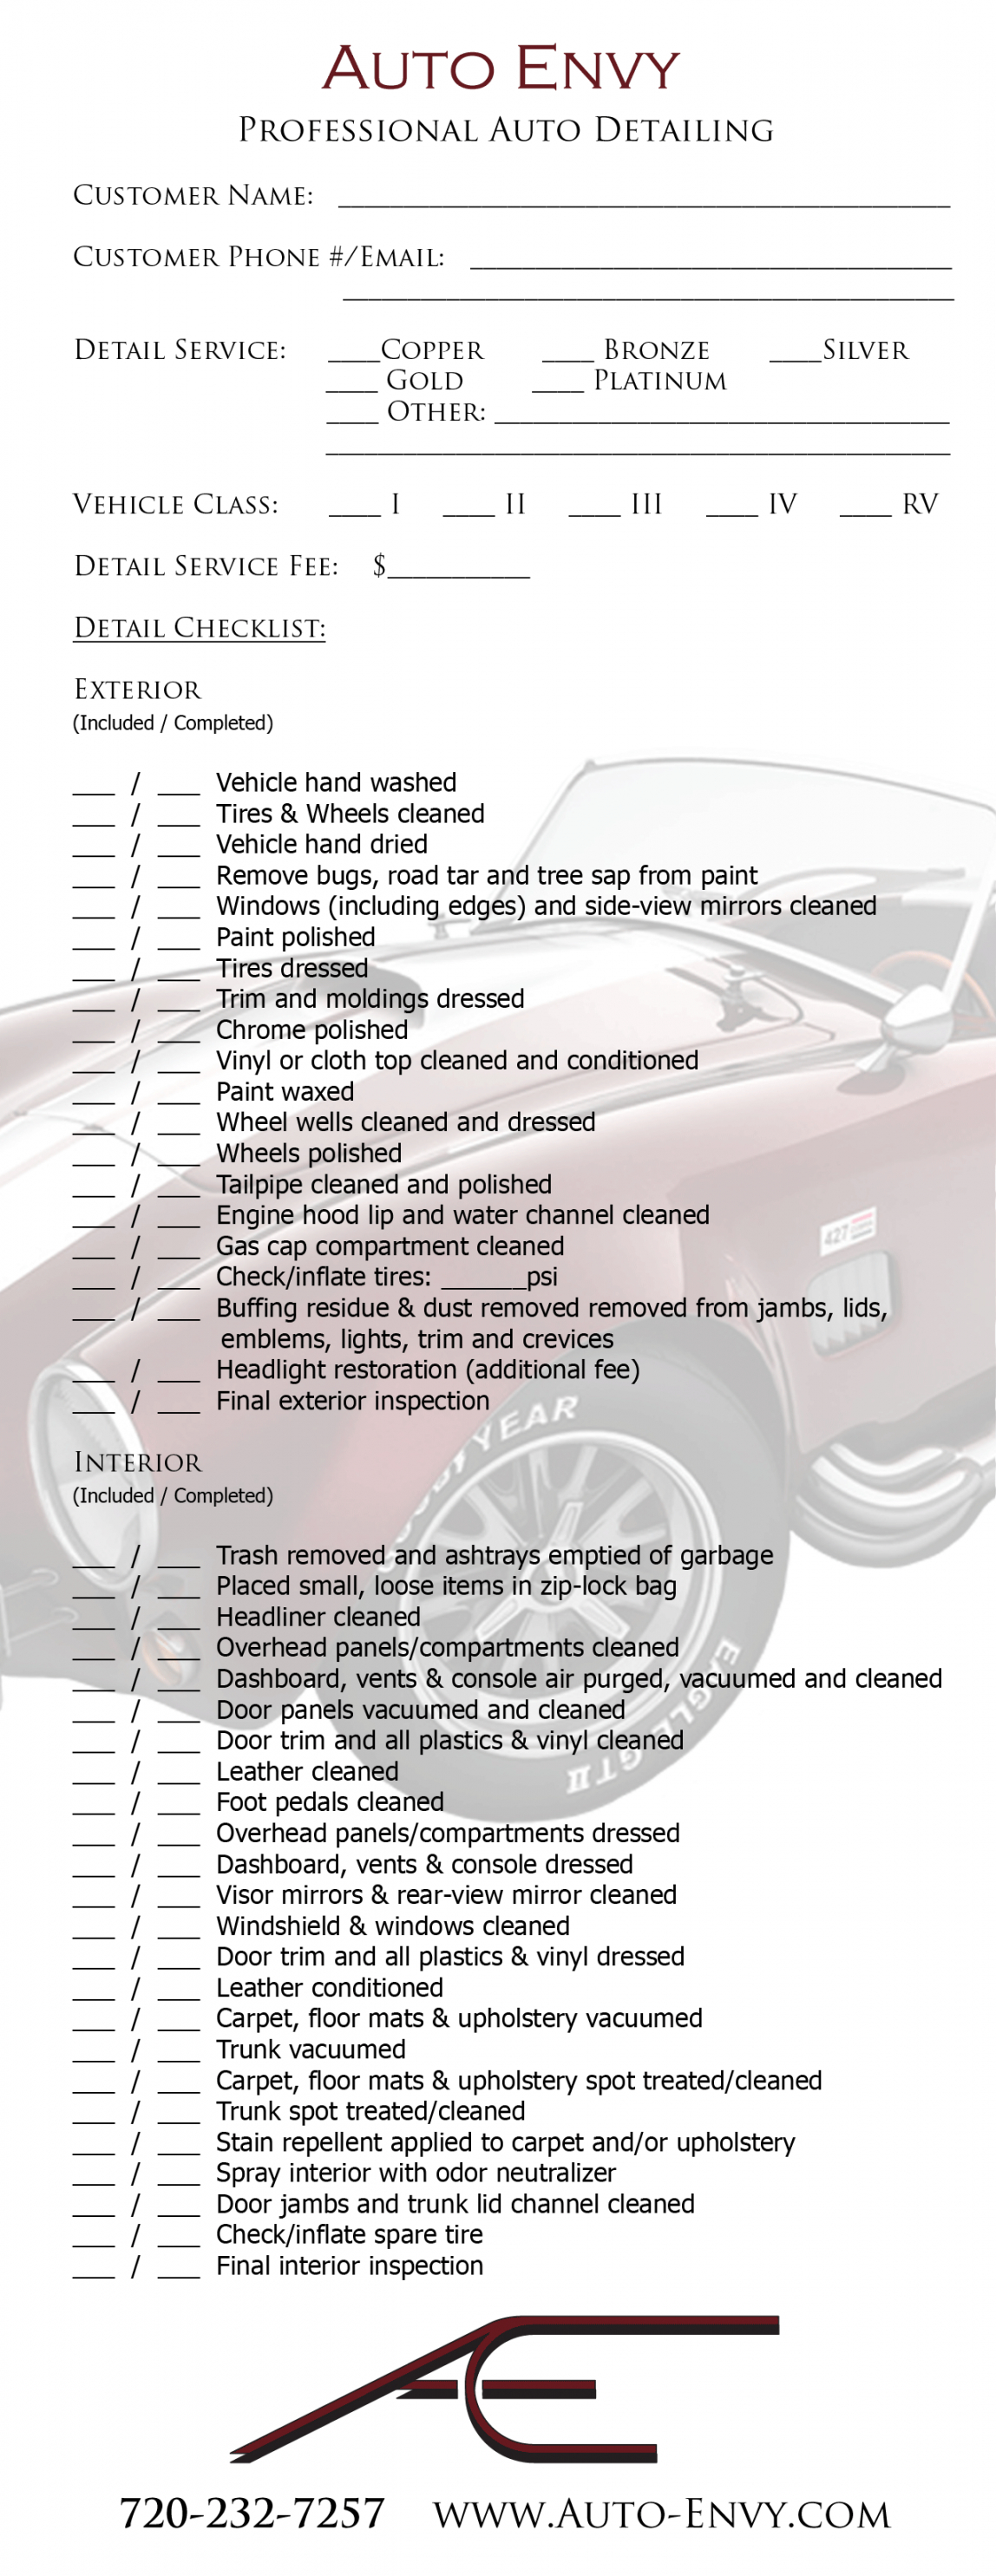 auto detailing wikipedia car checklist pdf professional inspection auto detailing checklist template samples